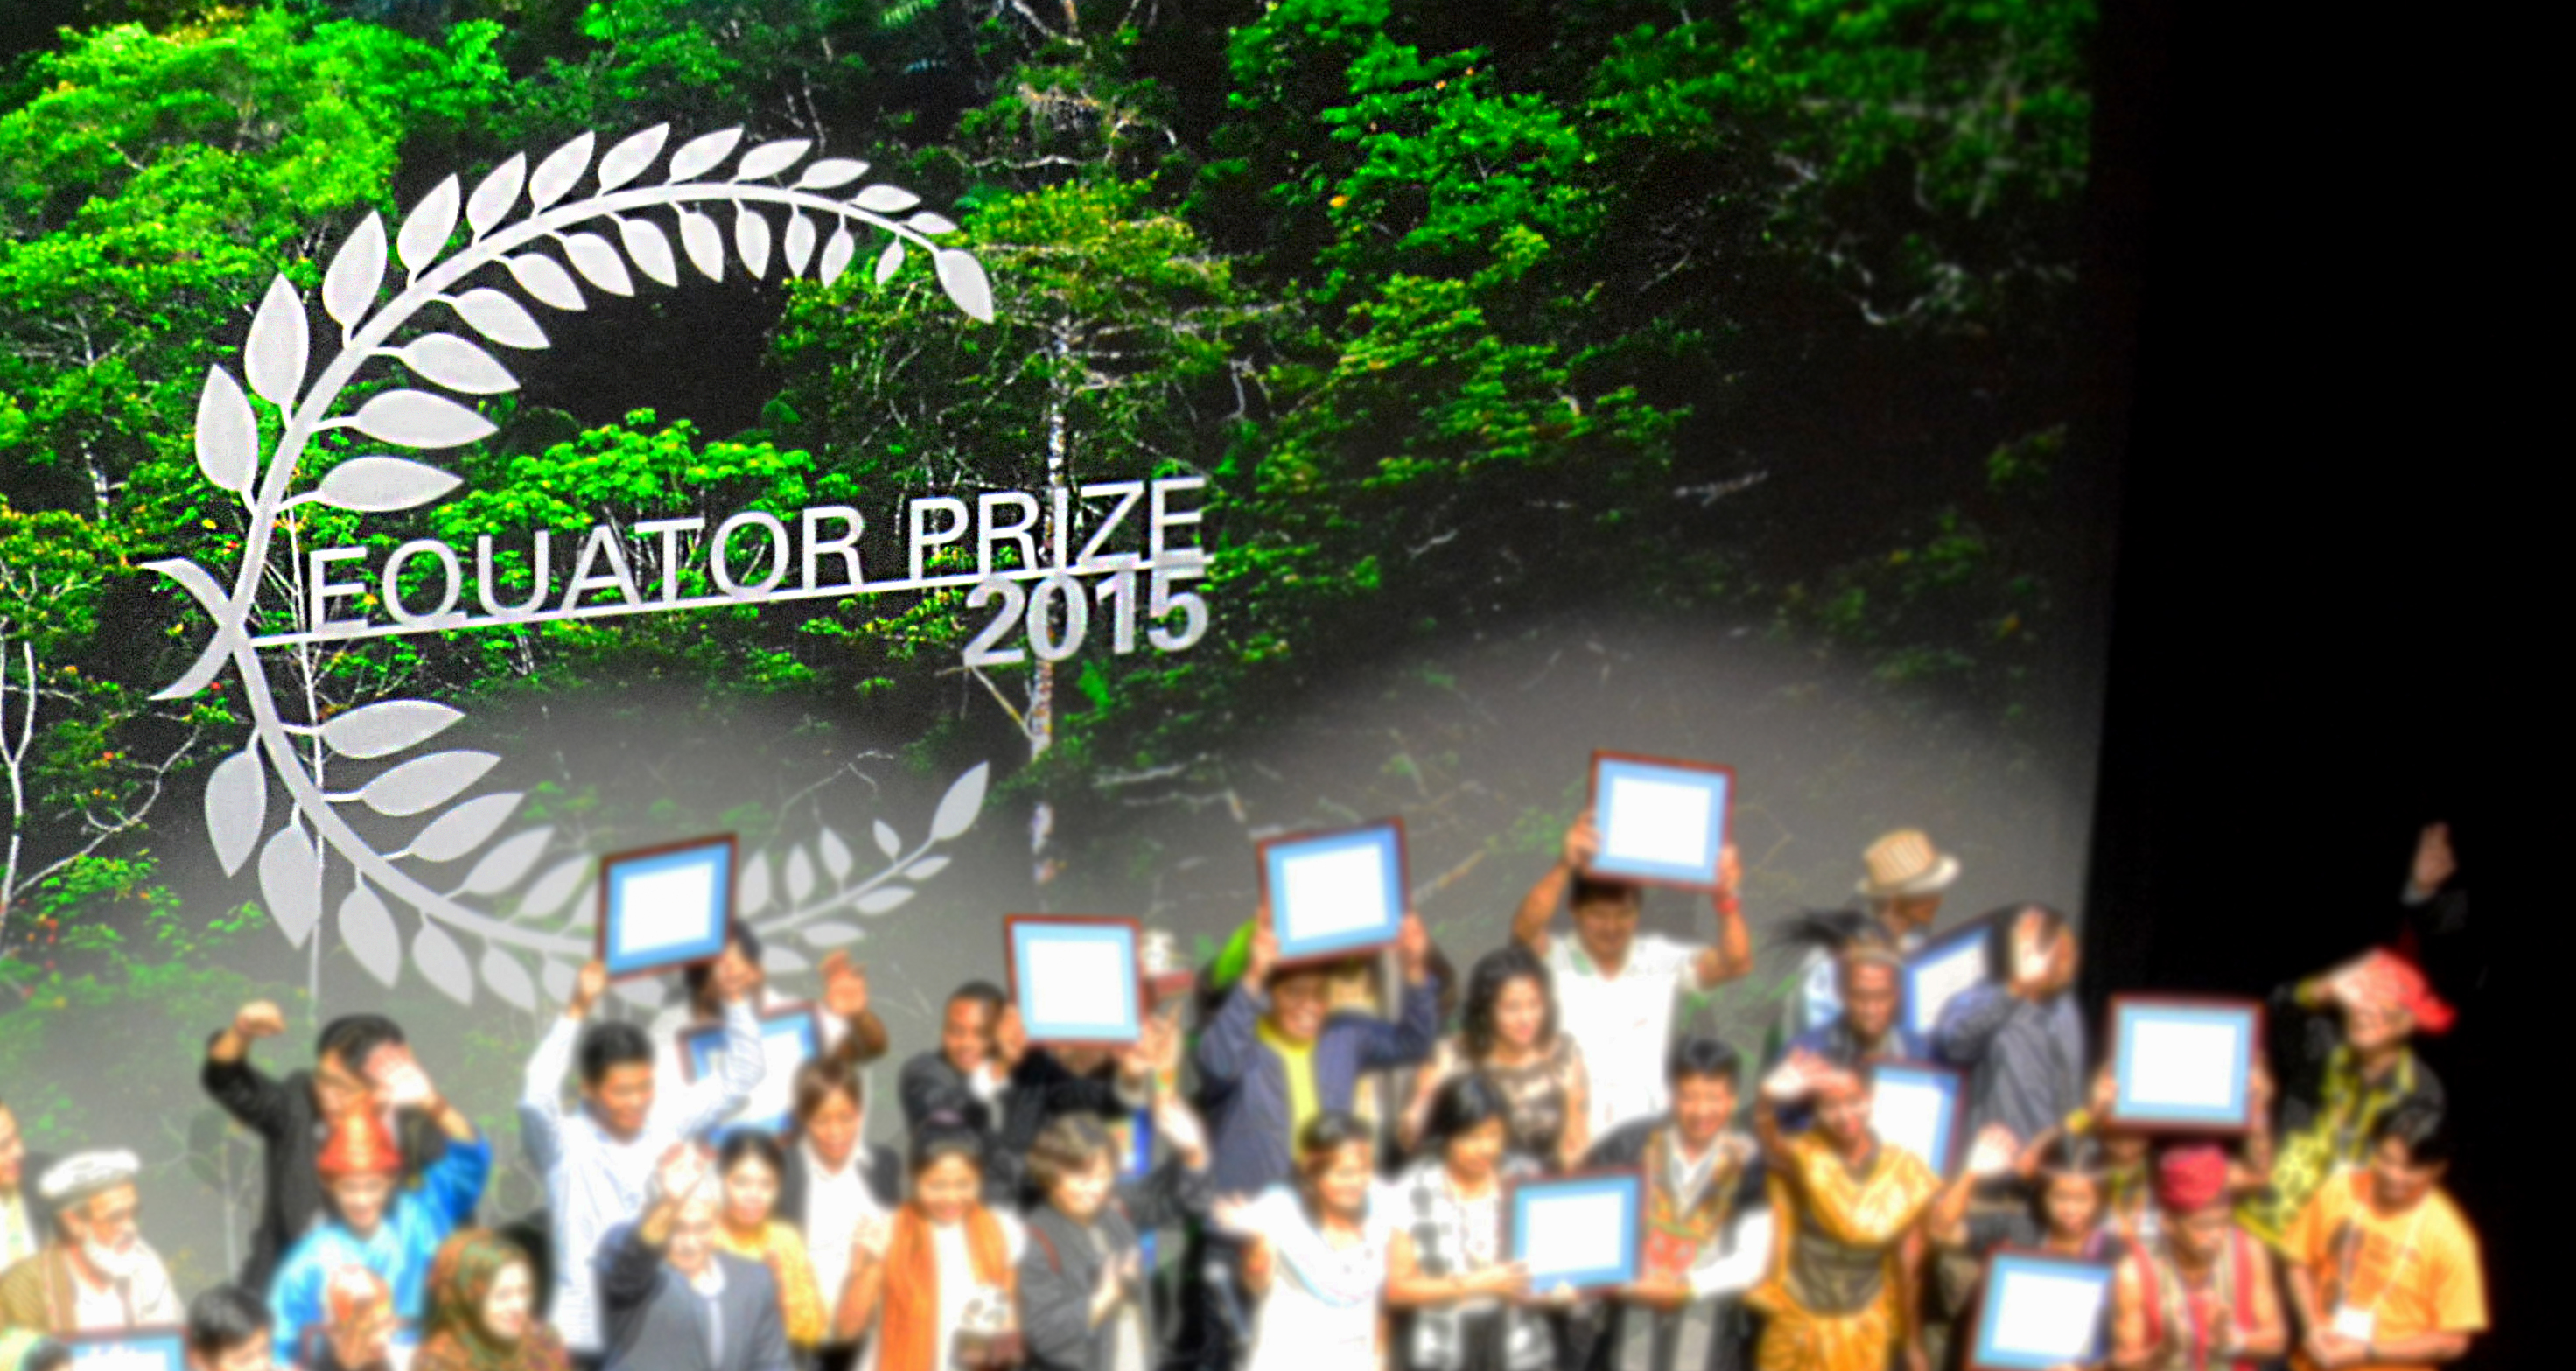 Image of Equator Prize stage